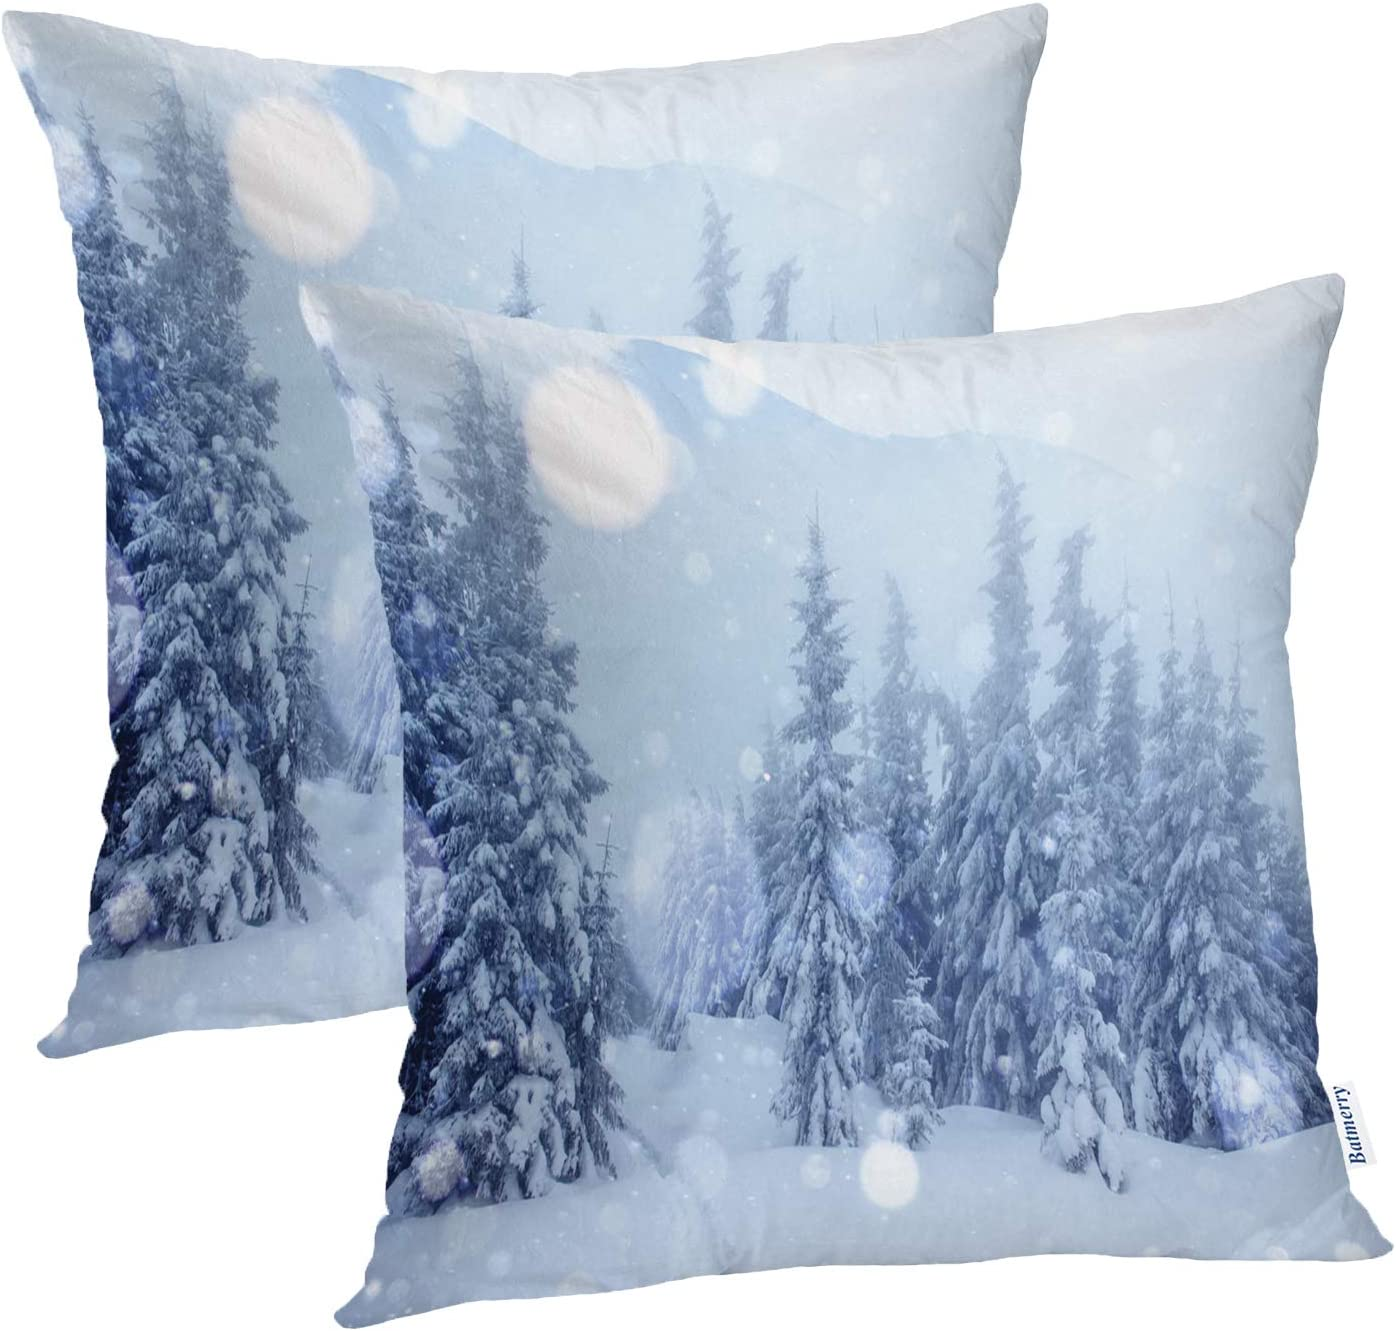 Batmerry Winter Pillow Covers 18x18